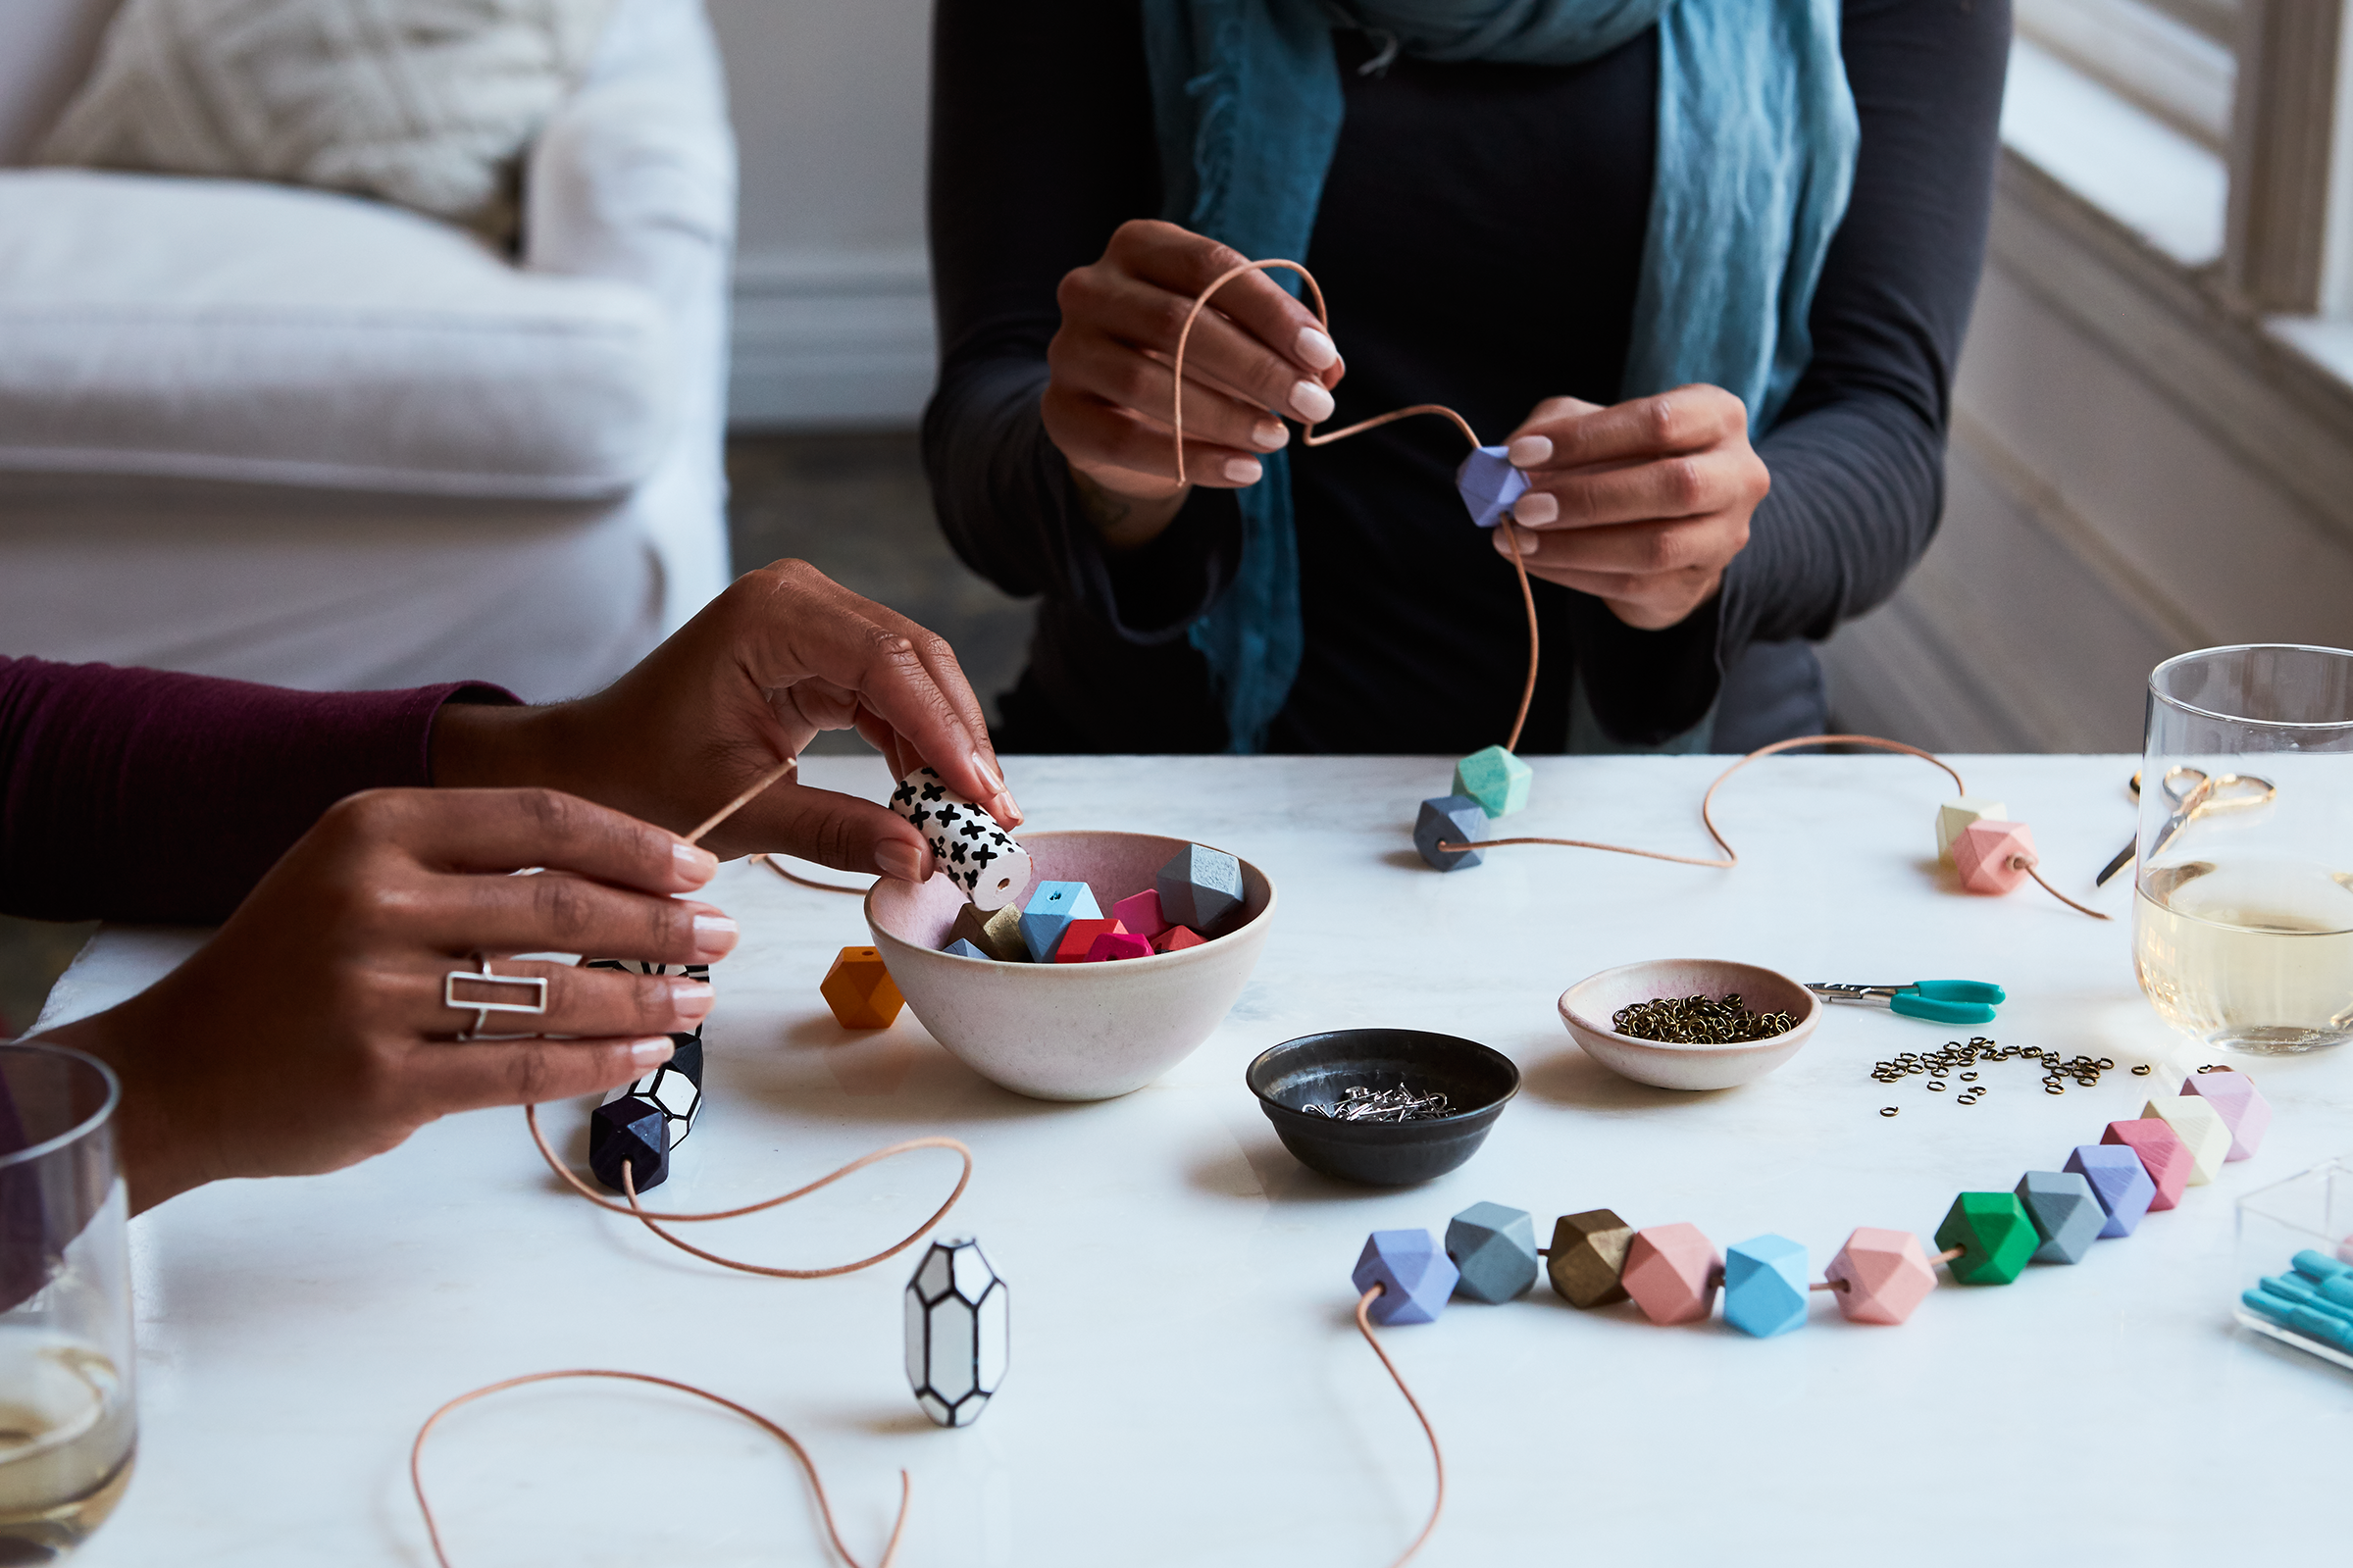 Etsy's New Site Is a DIY Dream Come True